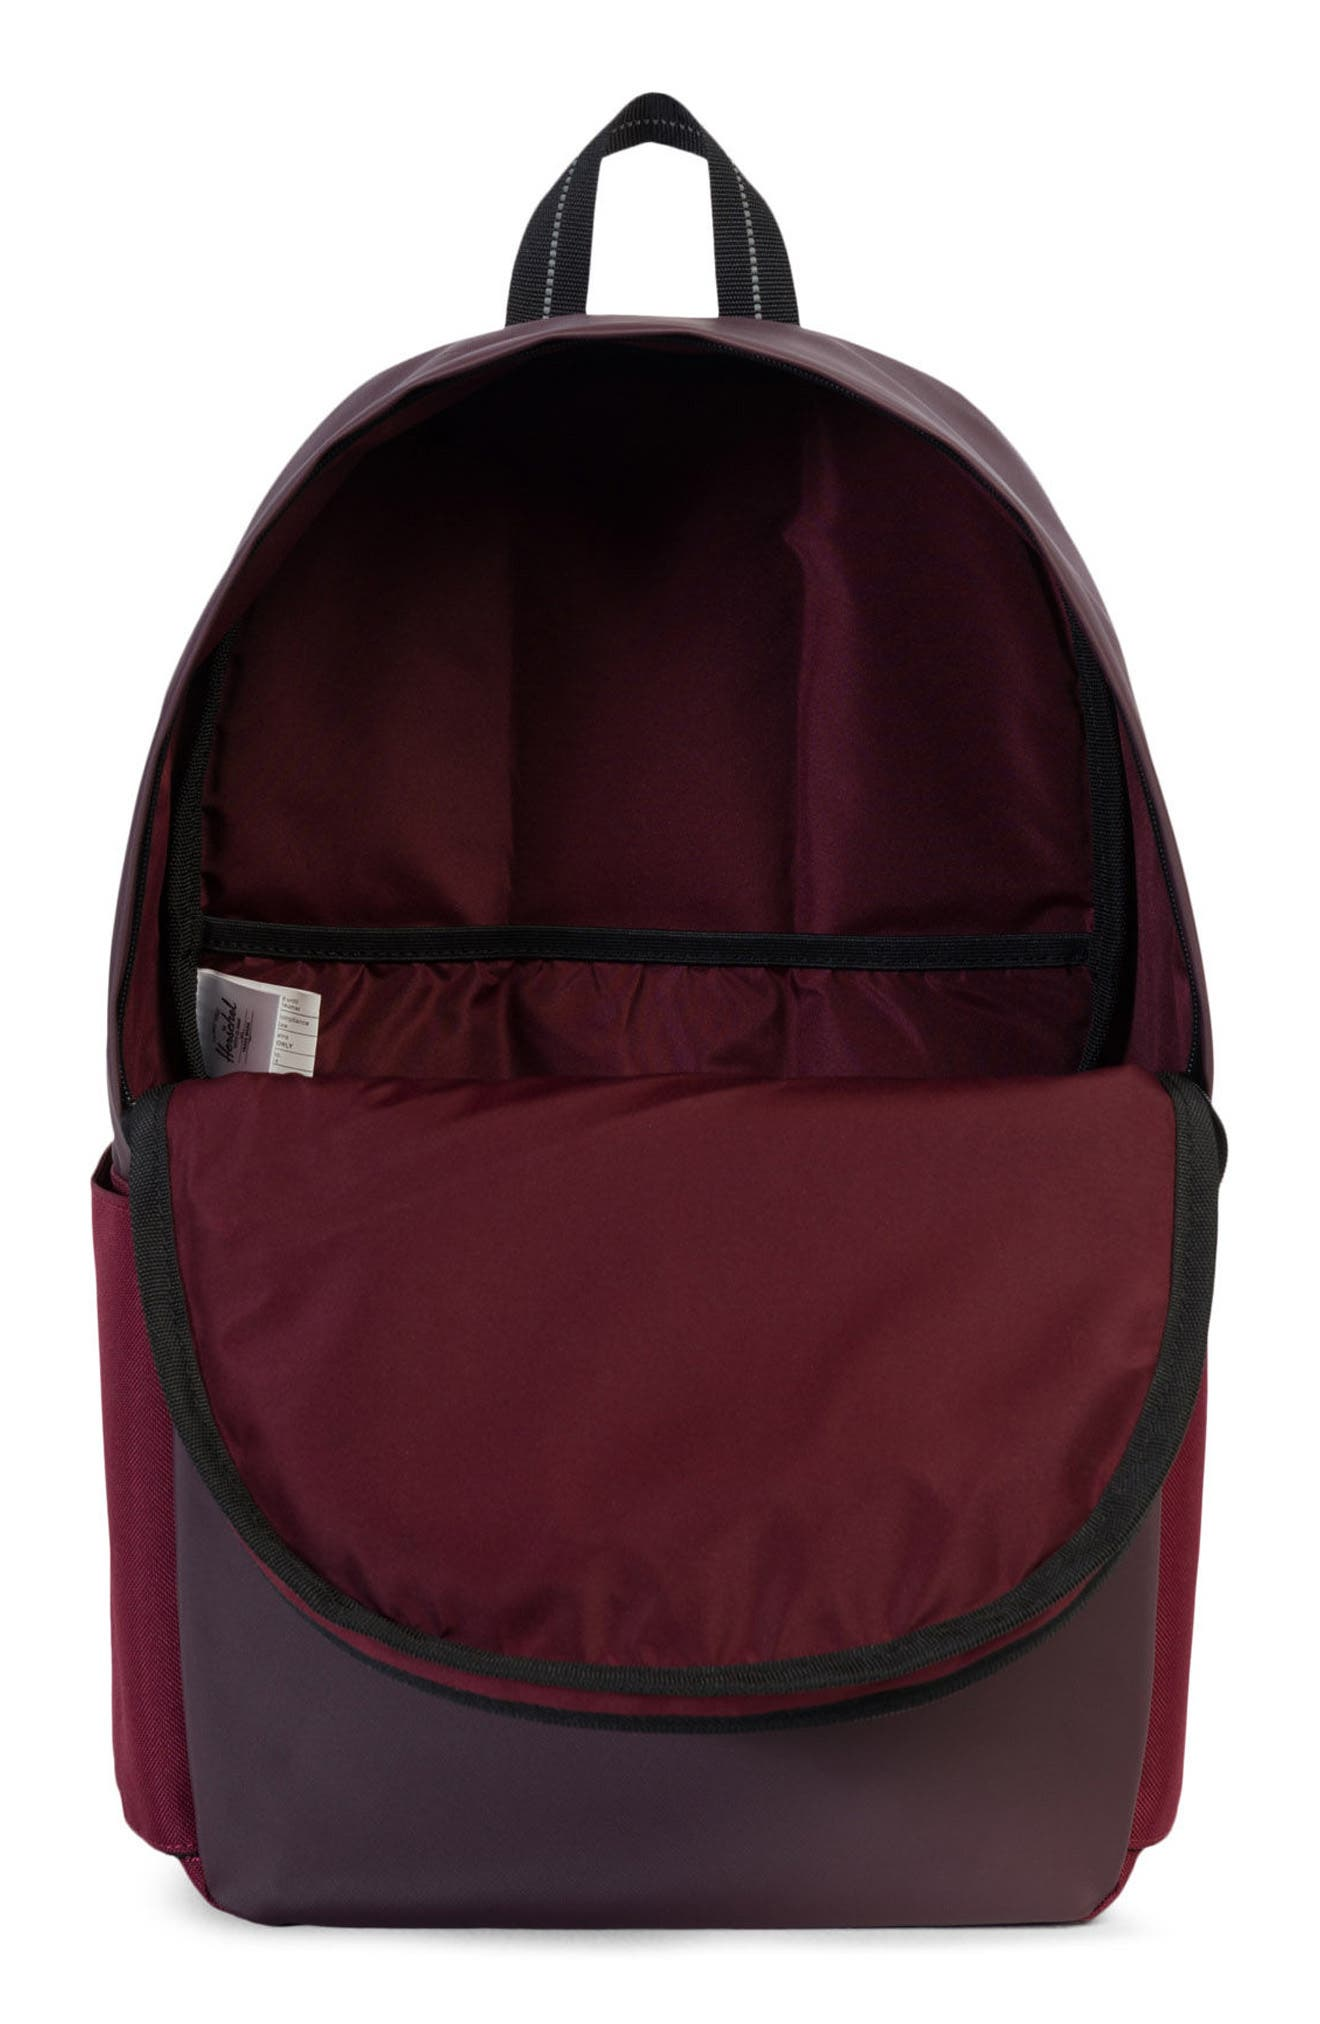 Parker Studio Collection Backpack,                             Alternate thumbnail 15, color,